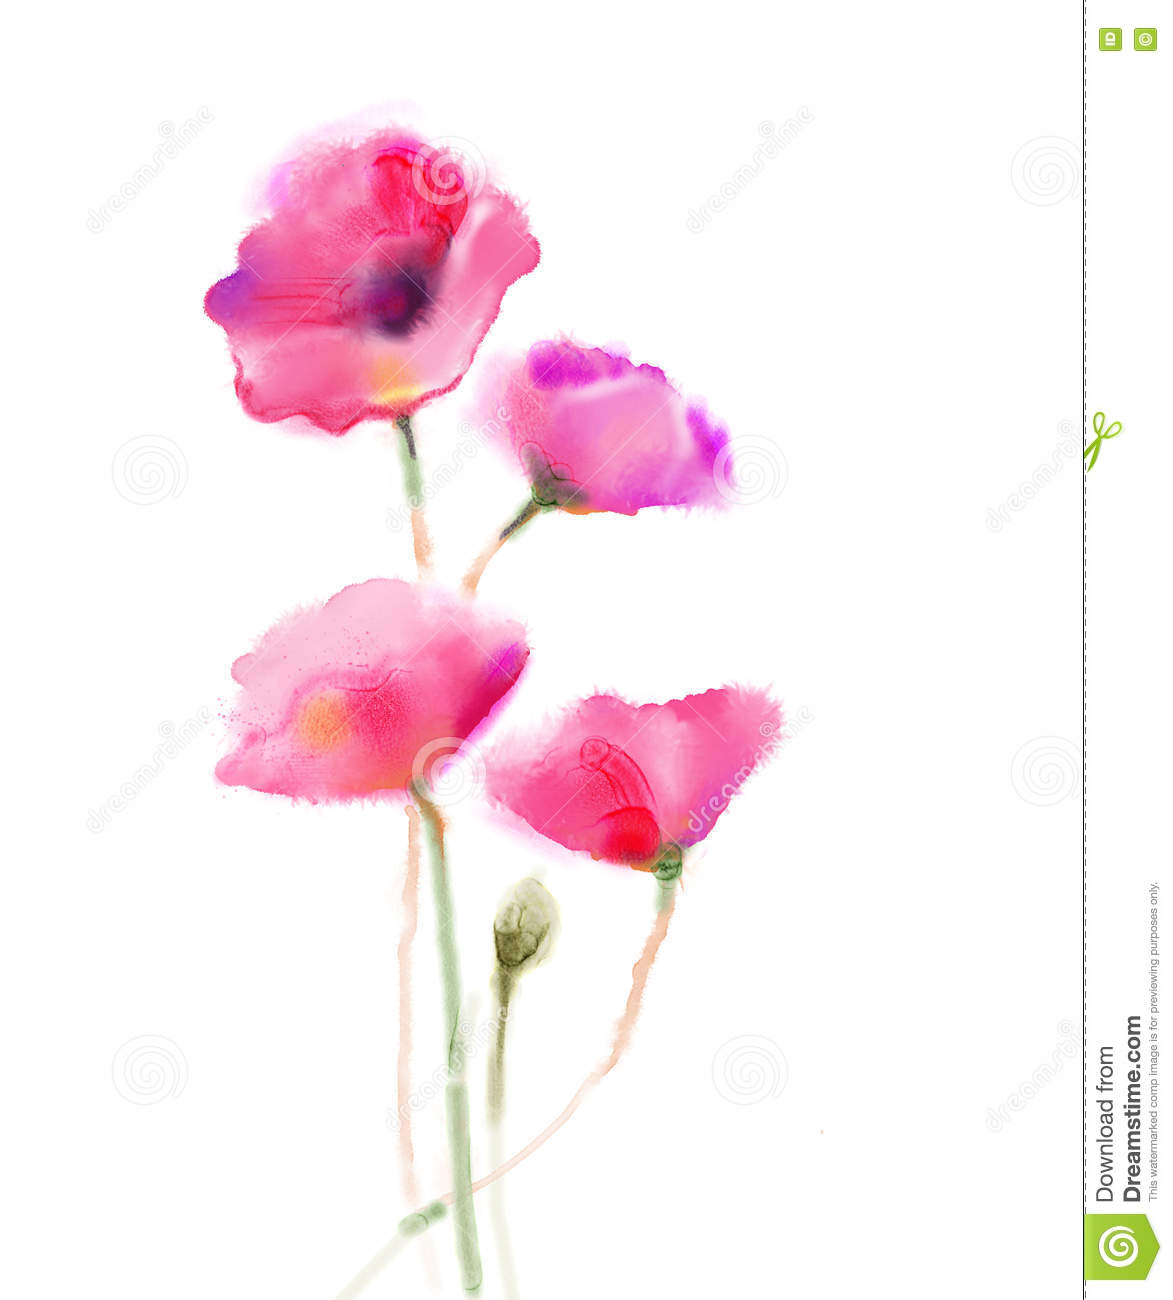 Watercolor Painting Poppy Flower Isolated Flowers On White Paper